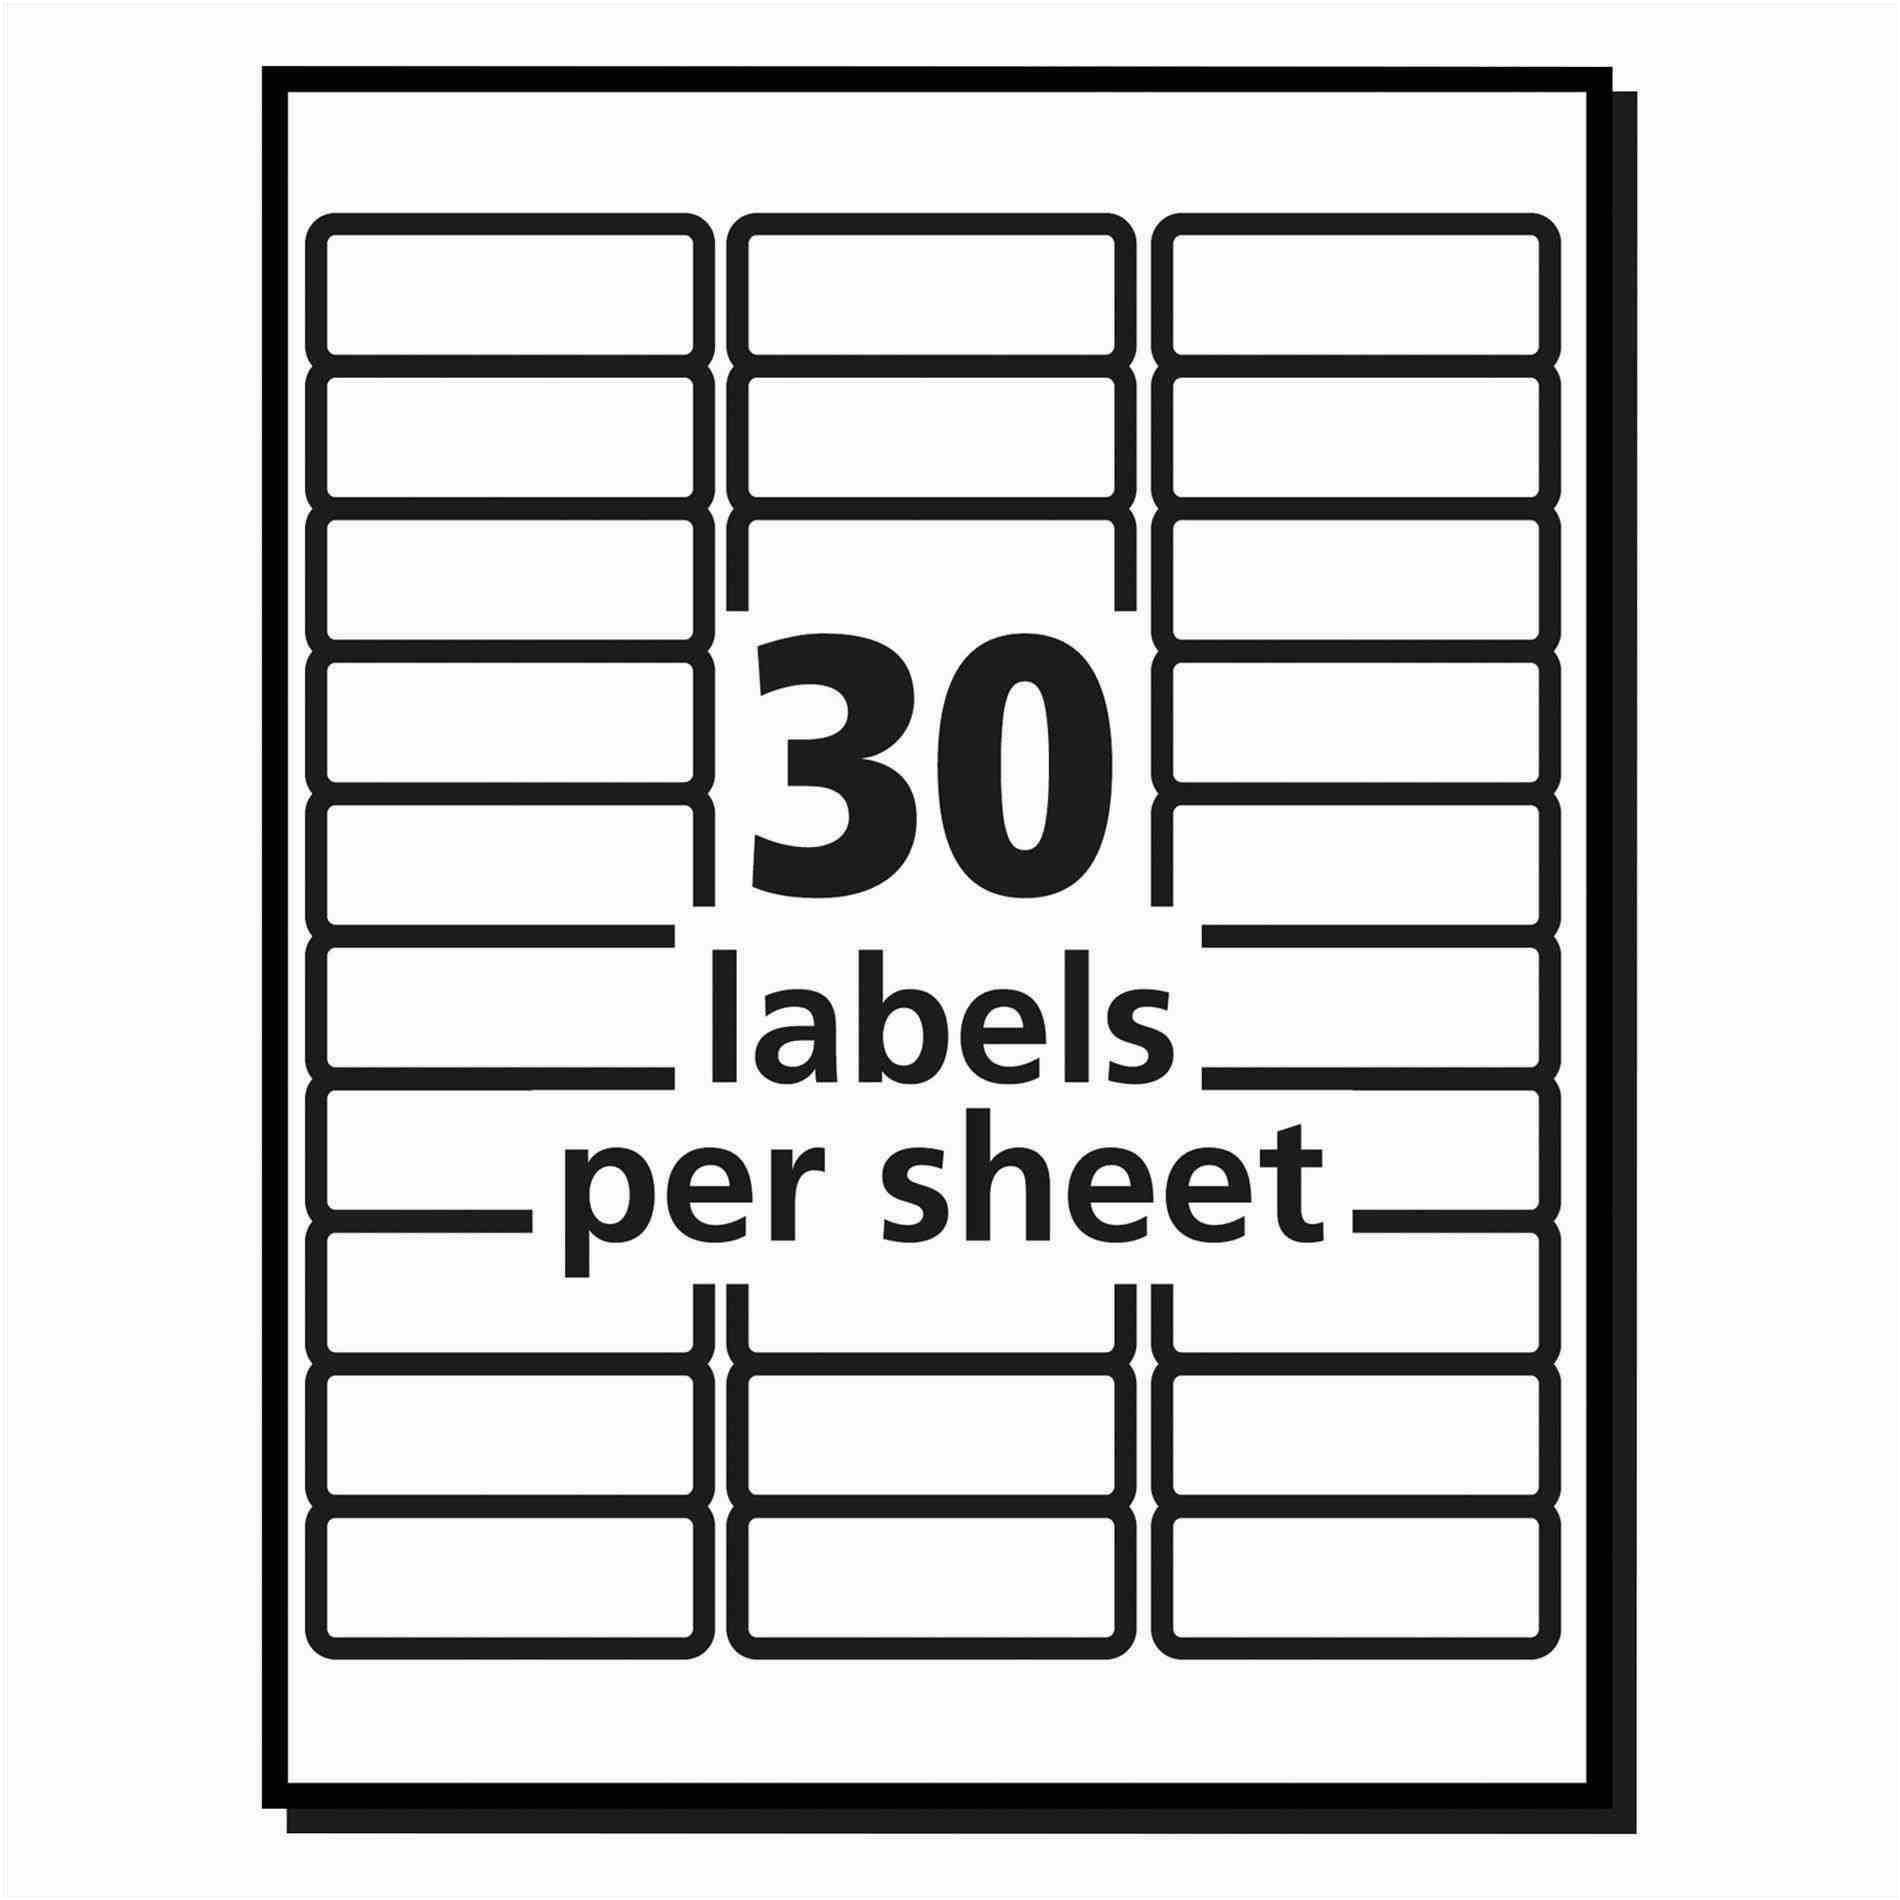 Avery Return Label Template Avery 80 Labels Template Kleobeachfixco Label Template 80